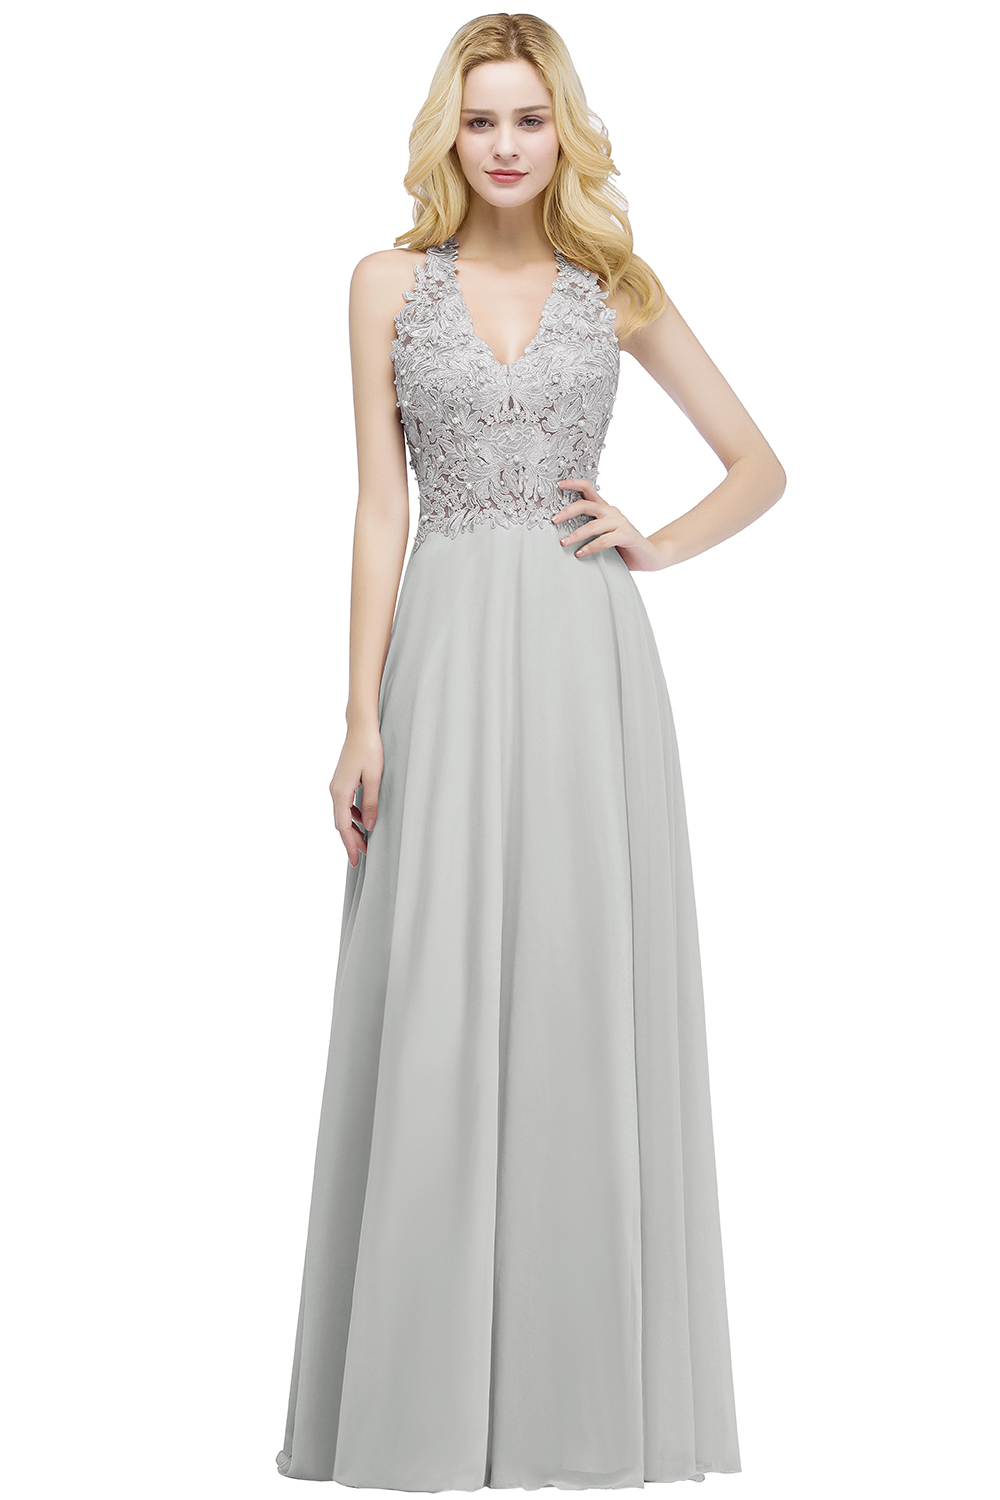 Elegant A Line Illusion Back with Pearls Floor Length Evening Dress 6